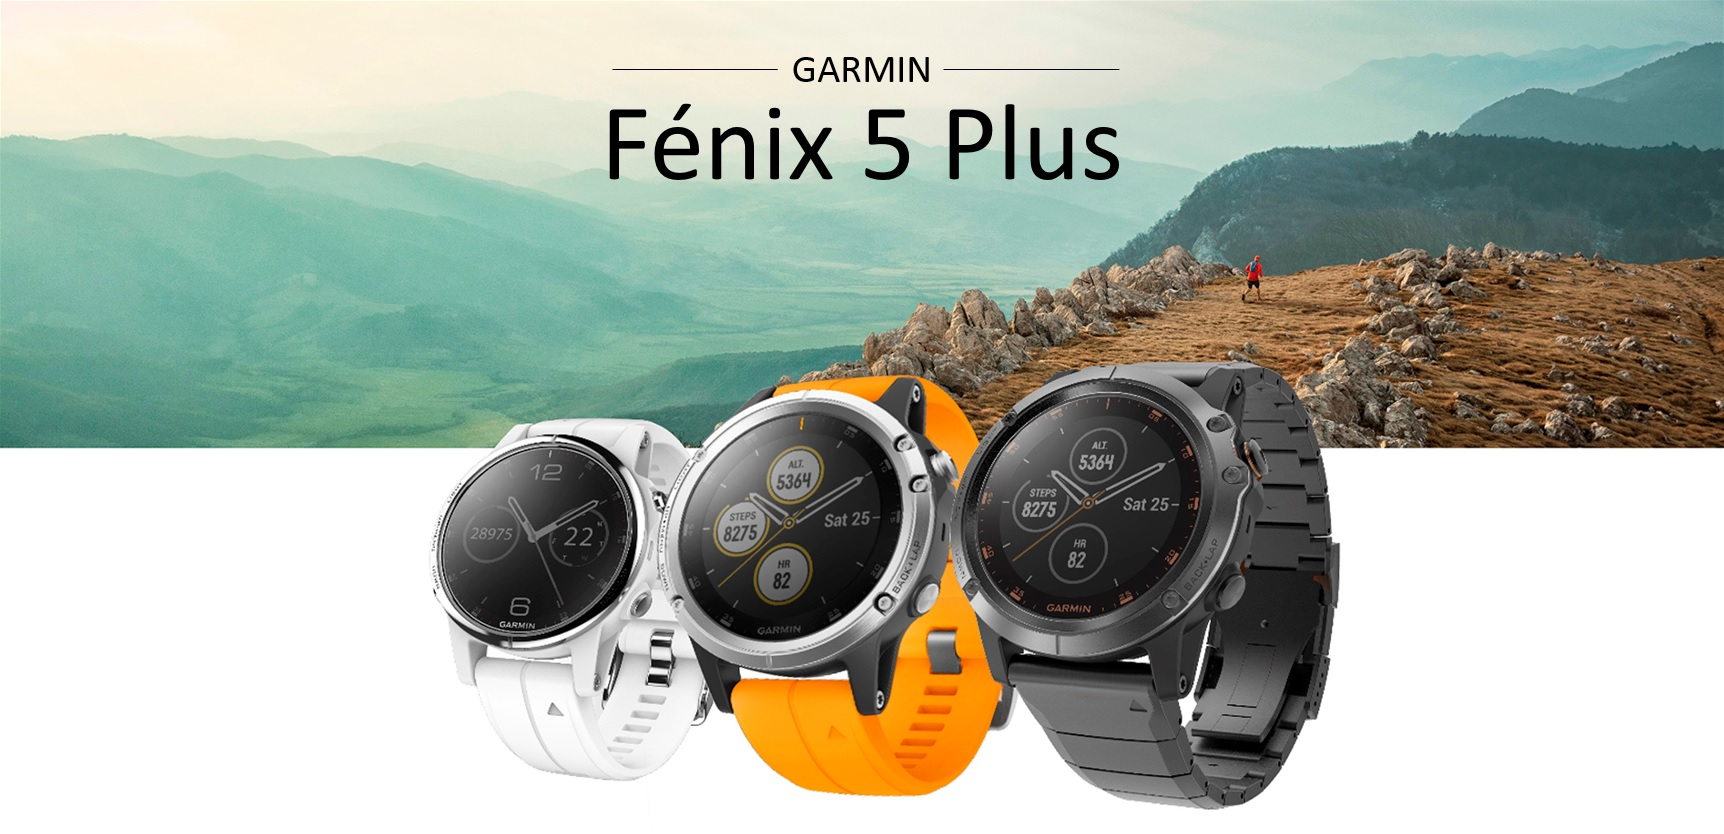 Fenix 5 Garmin Plus